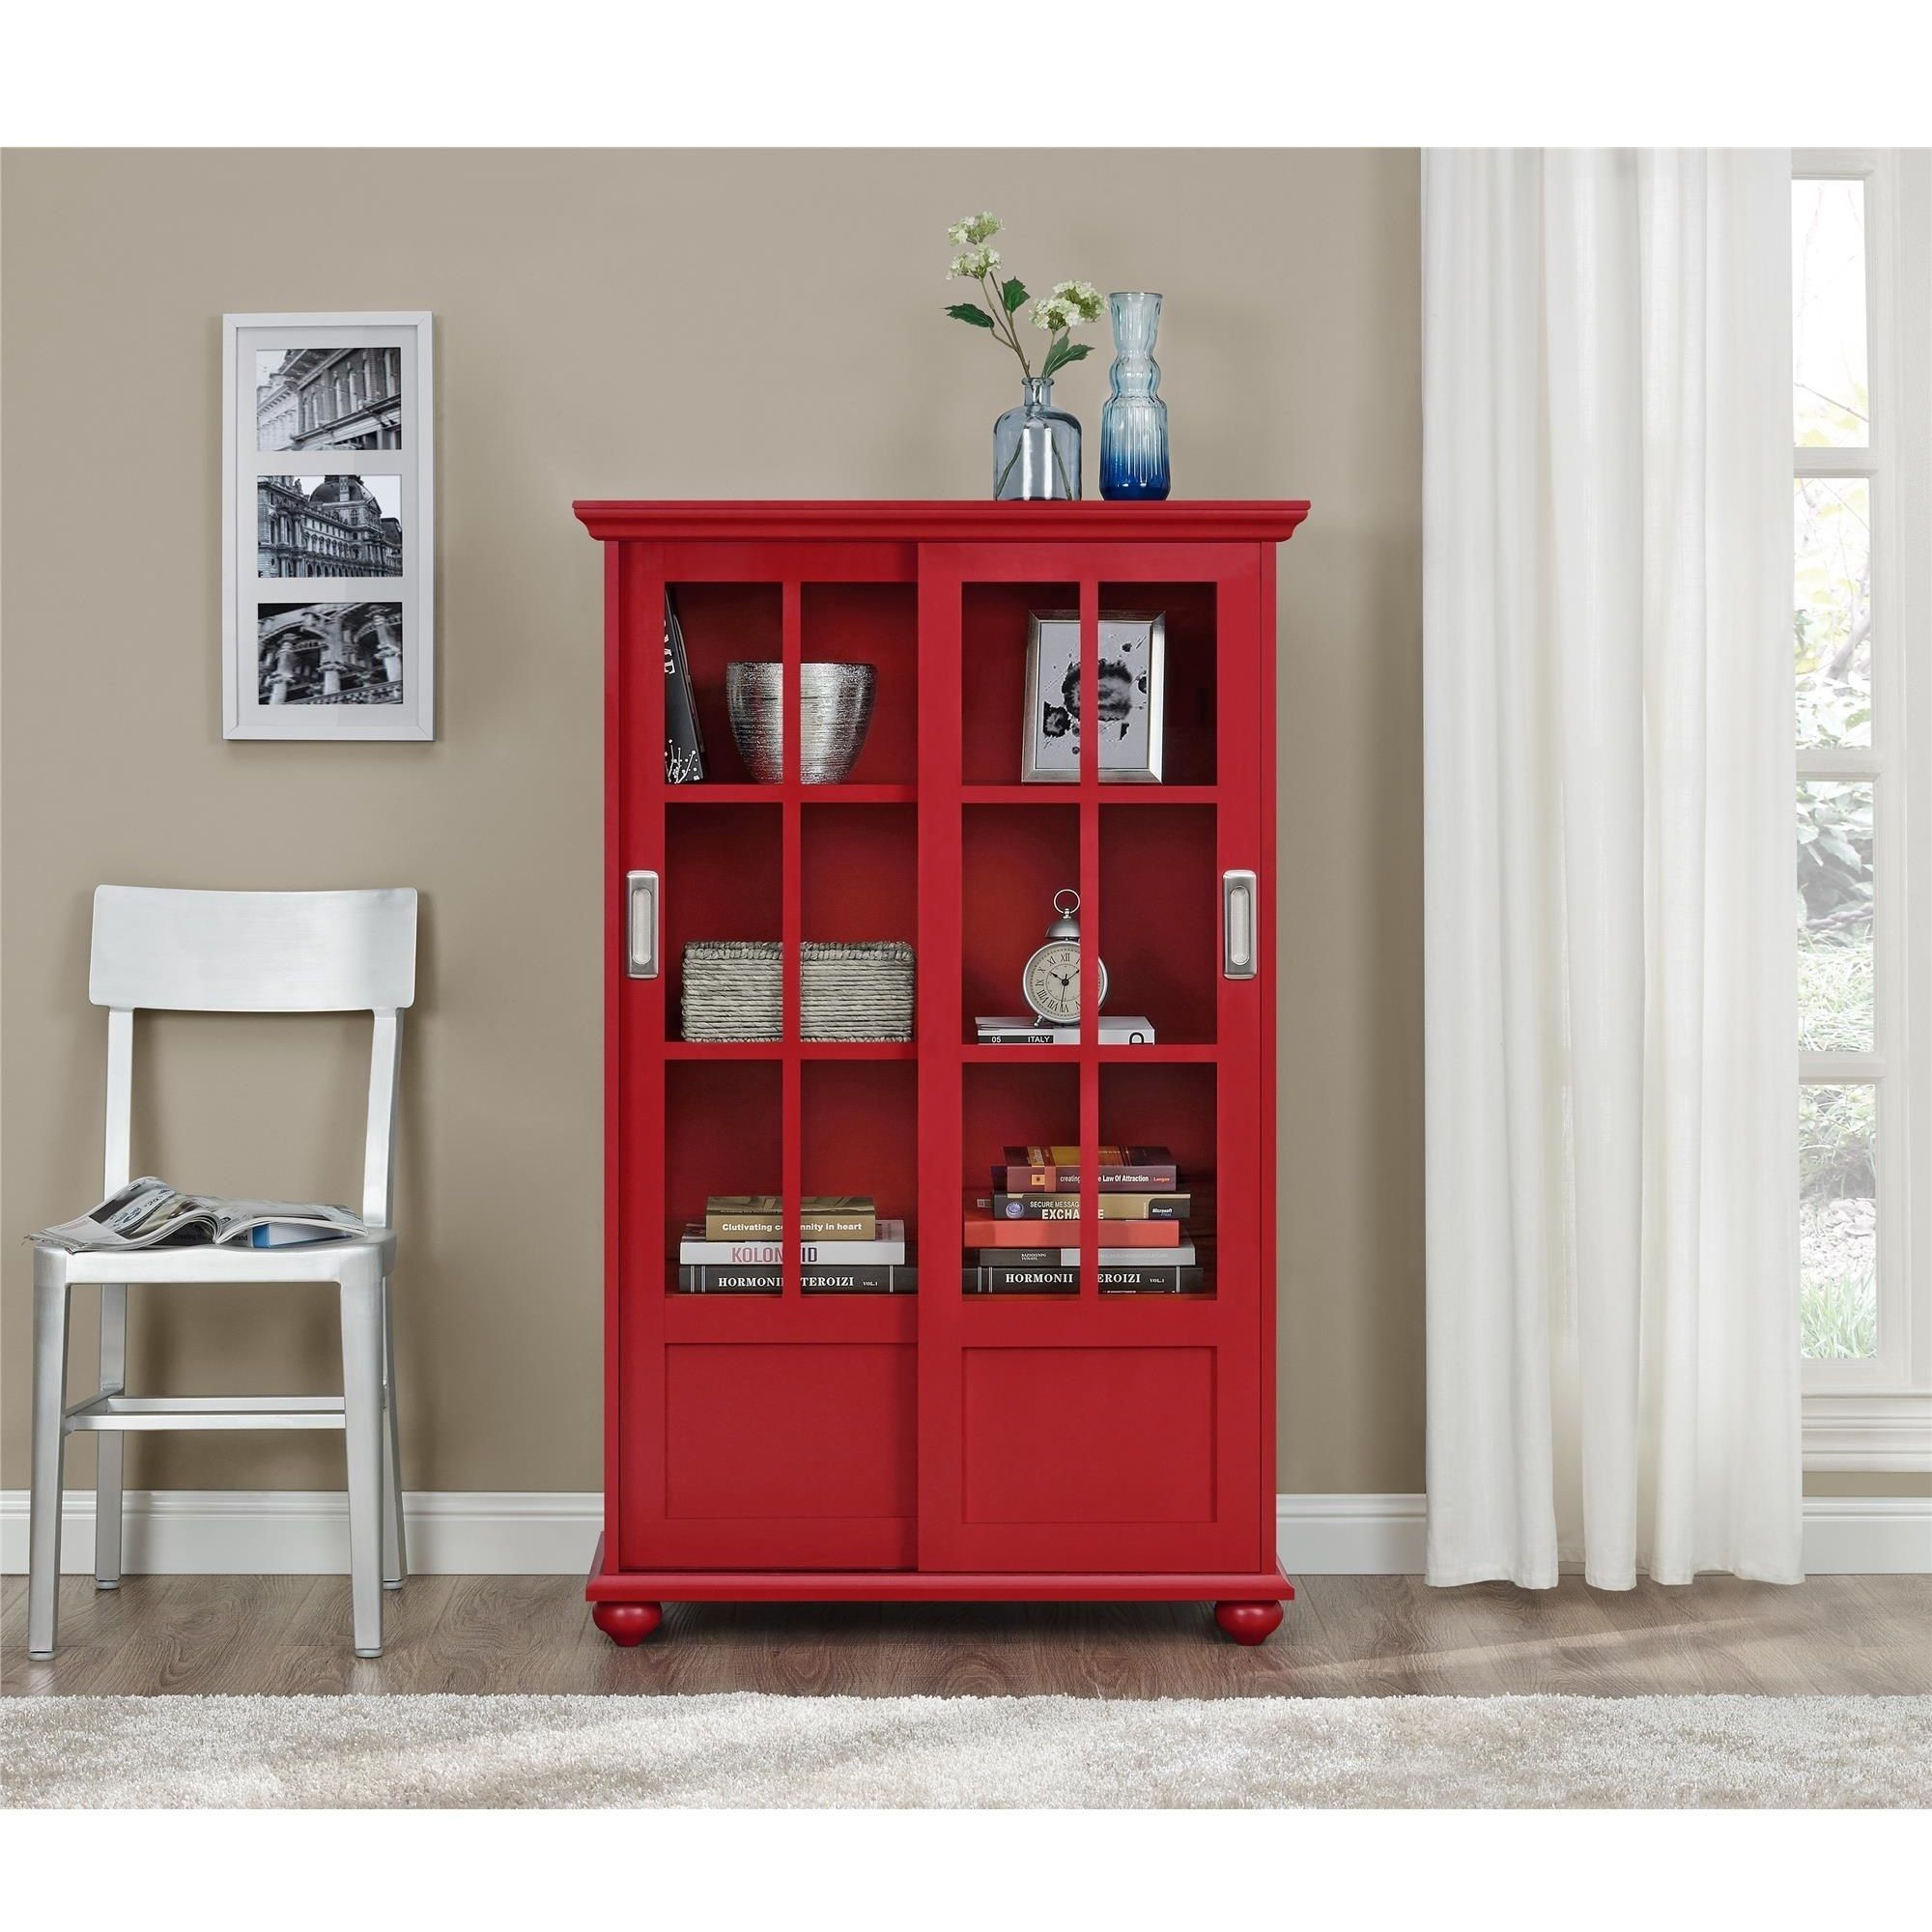 and improvement bookcases for door pictures cabinetsliding slide photos diy appealing track bookcase new home doors of design kit cabinet barn open sliding modern